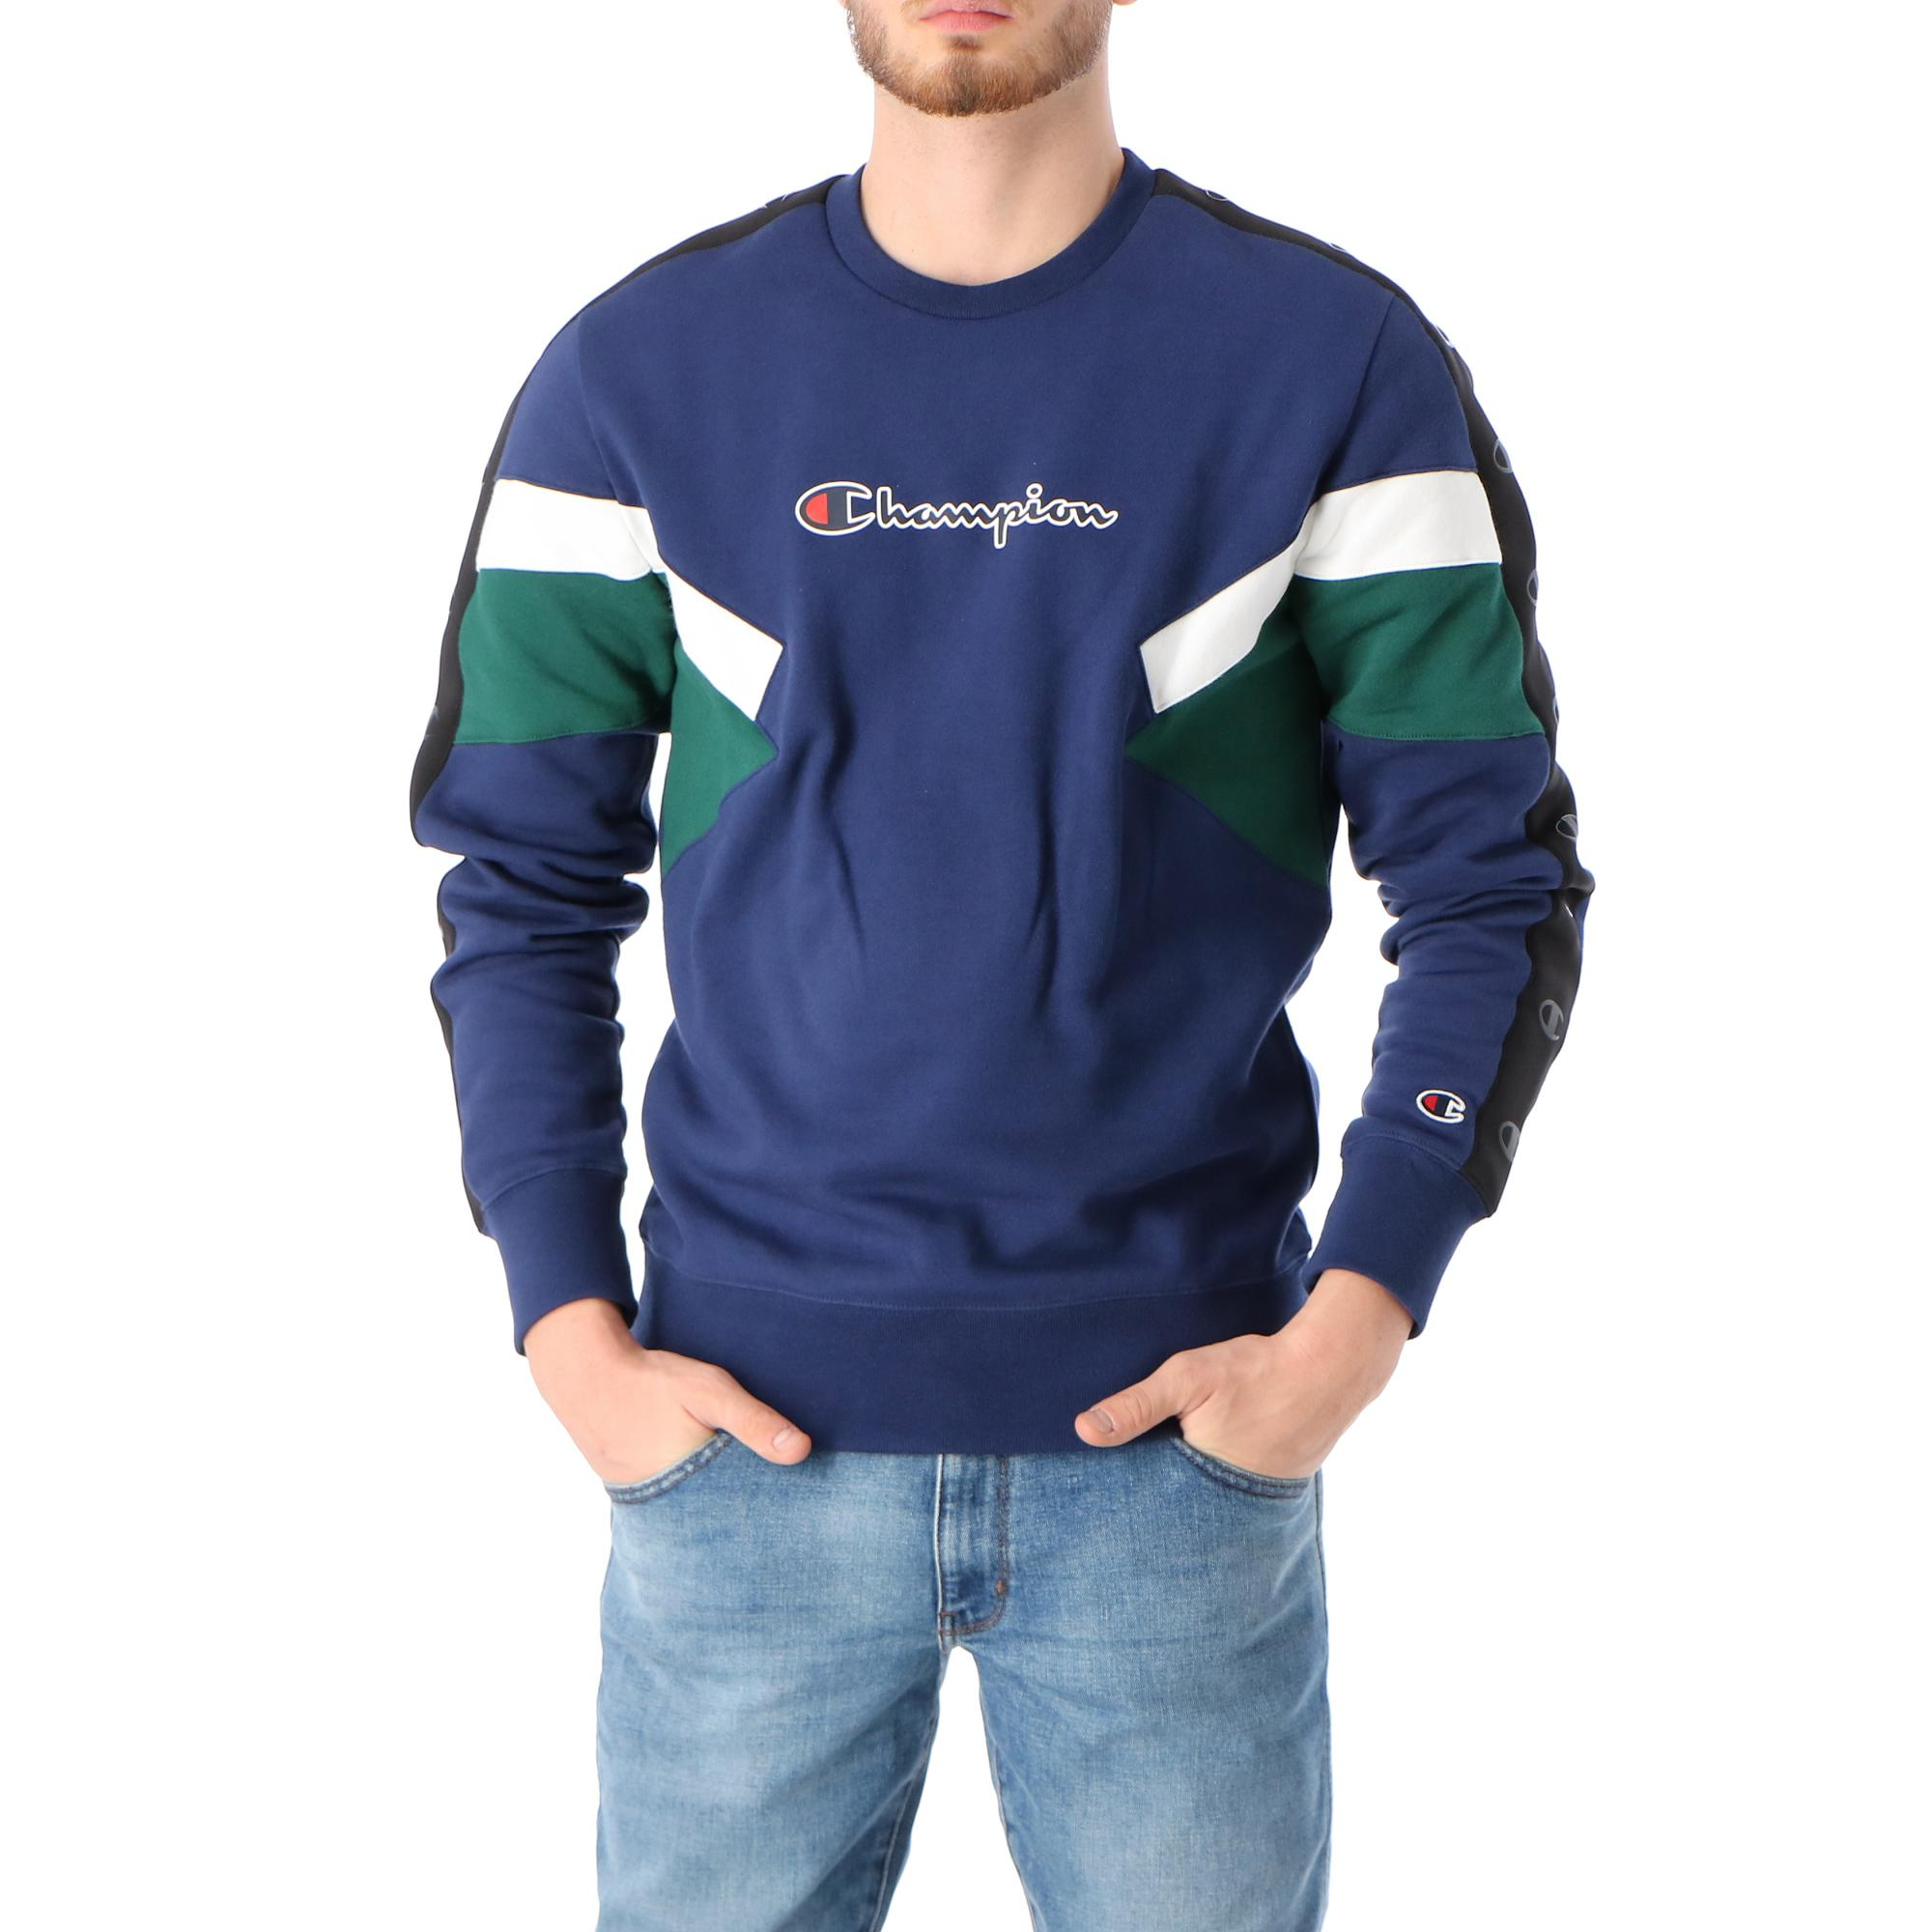 Champion Crewneck Sweatshirt Navy green bottle white